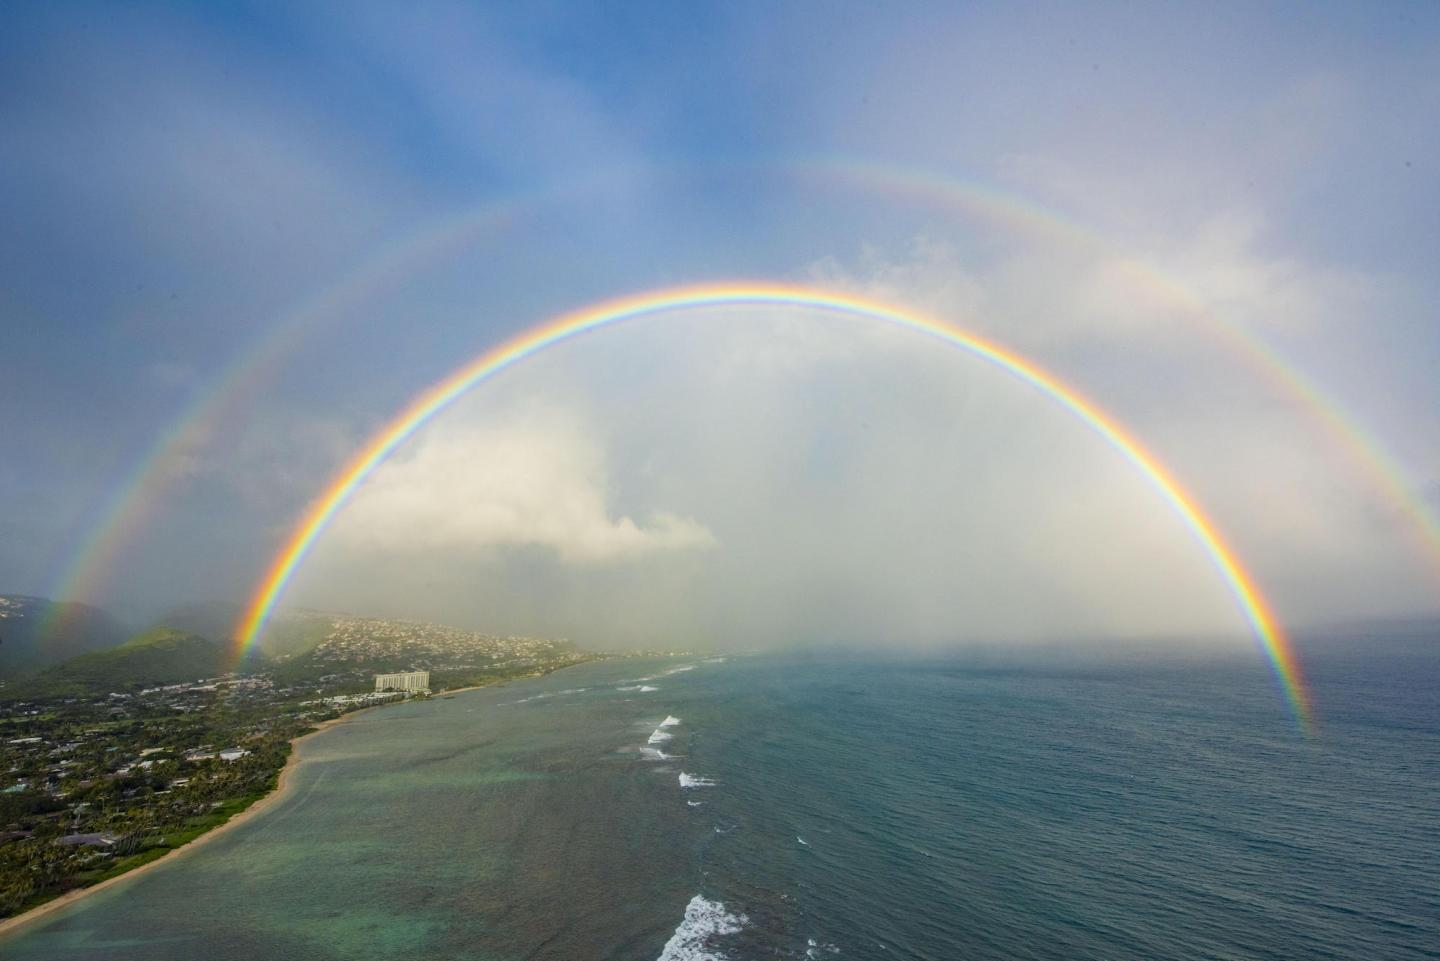 Hawaiian rainbow, or Ānuenue